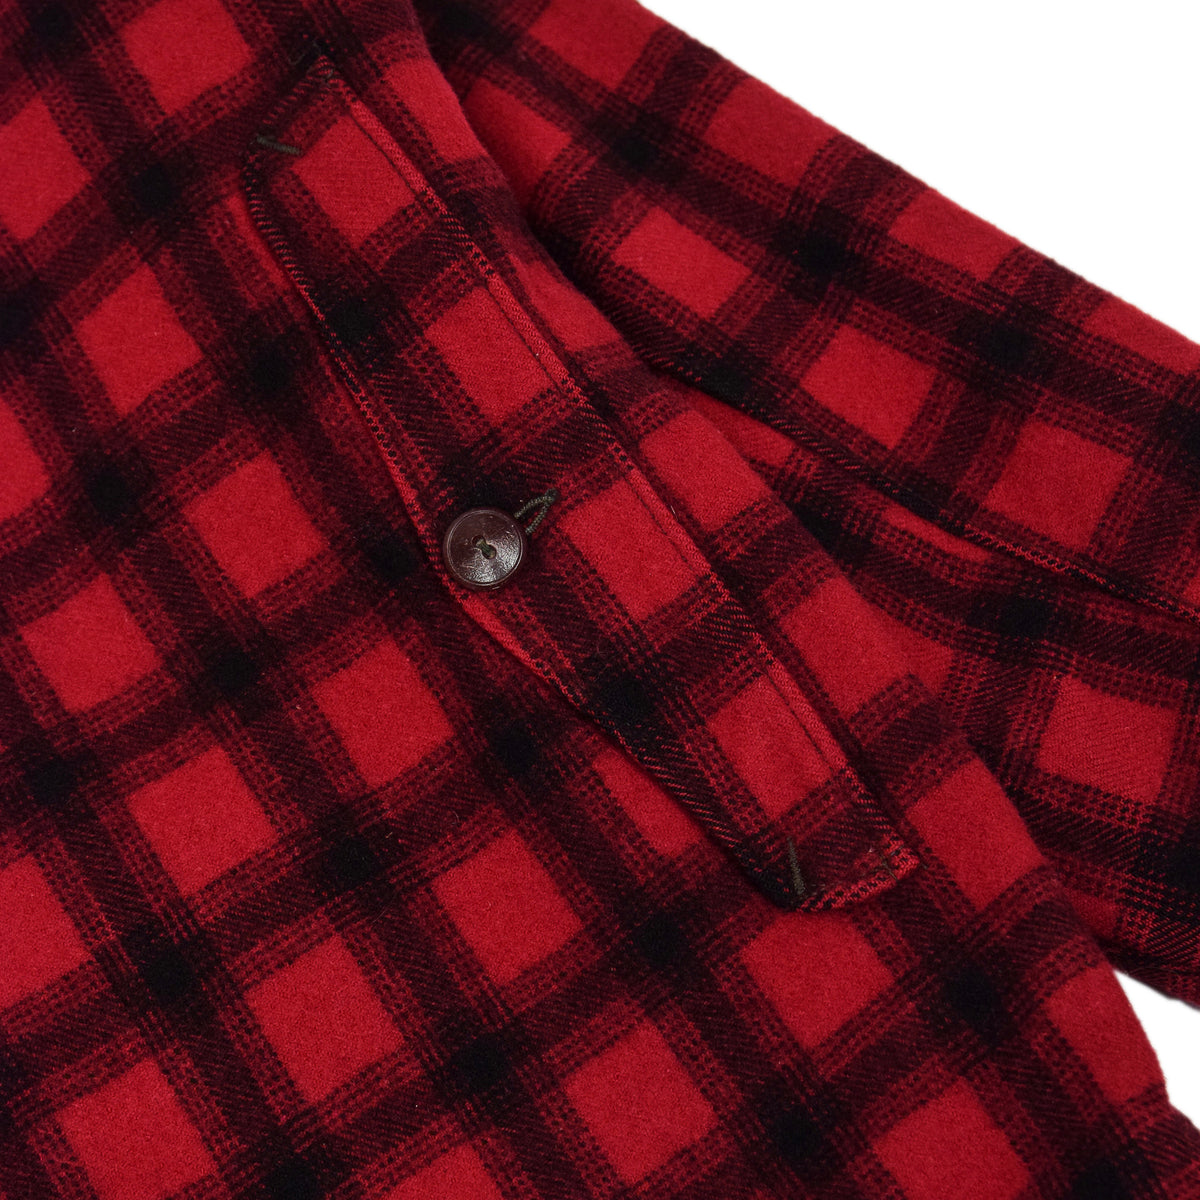 Vintage 70s Woolrich Woolen Mills Buffalo Plaid Mackinaw Hunting Jacket M back pocket